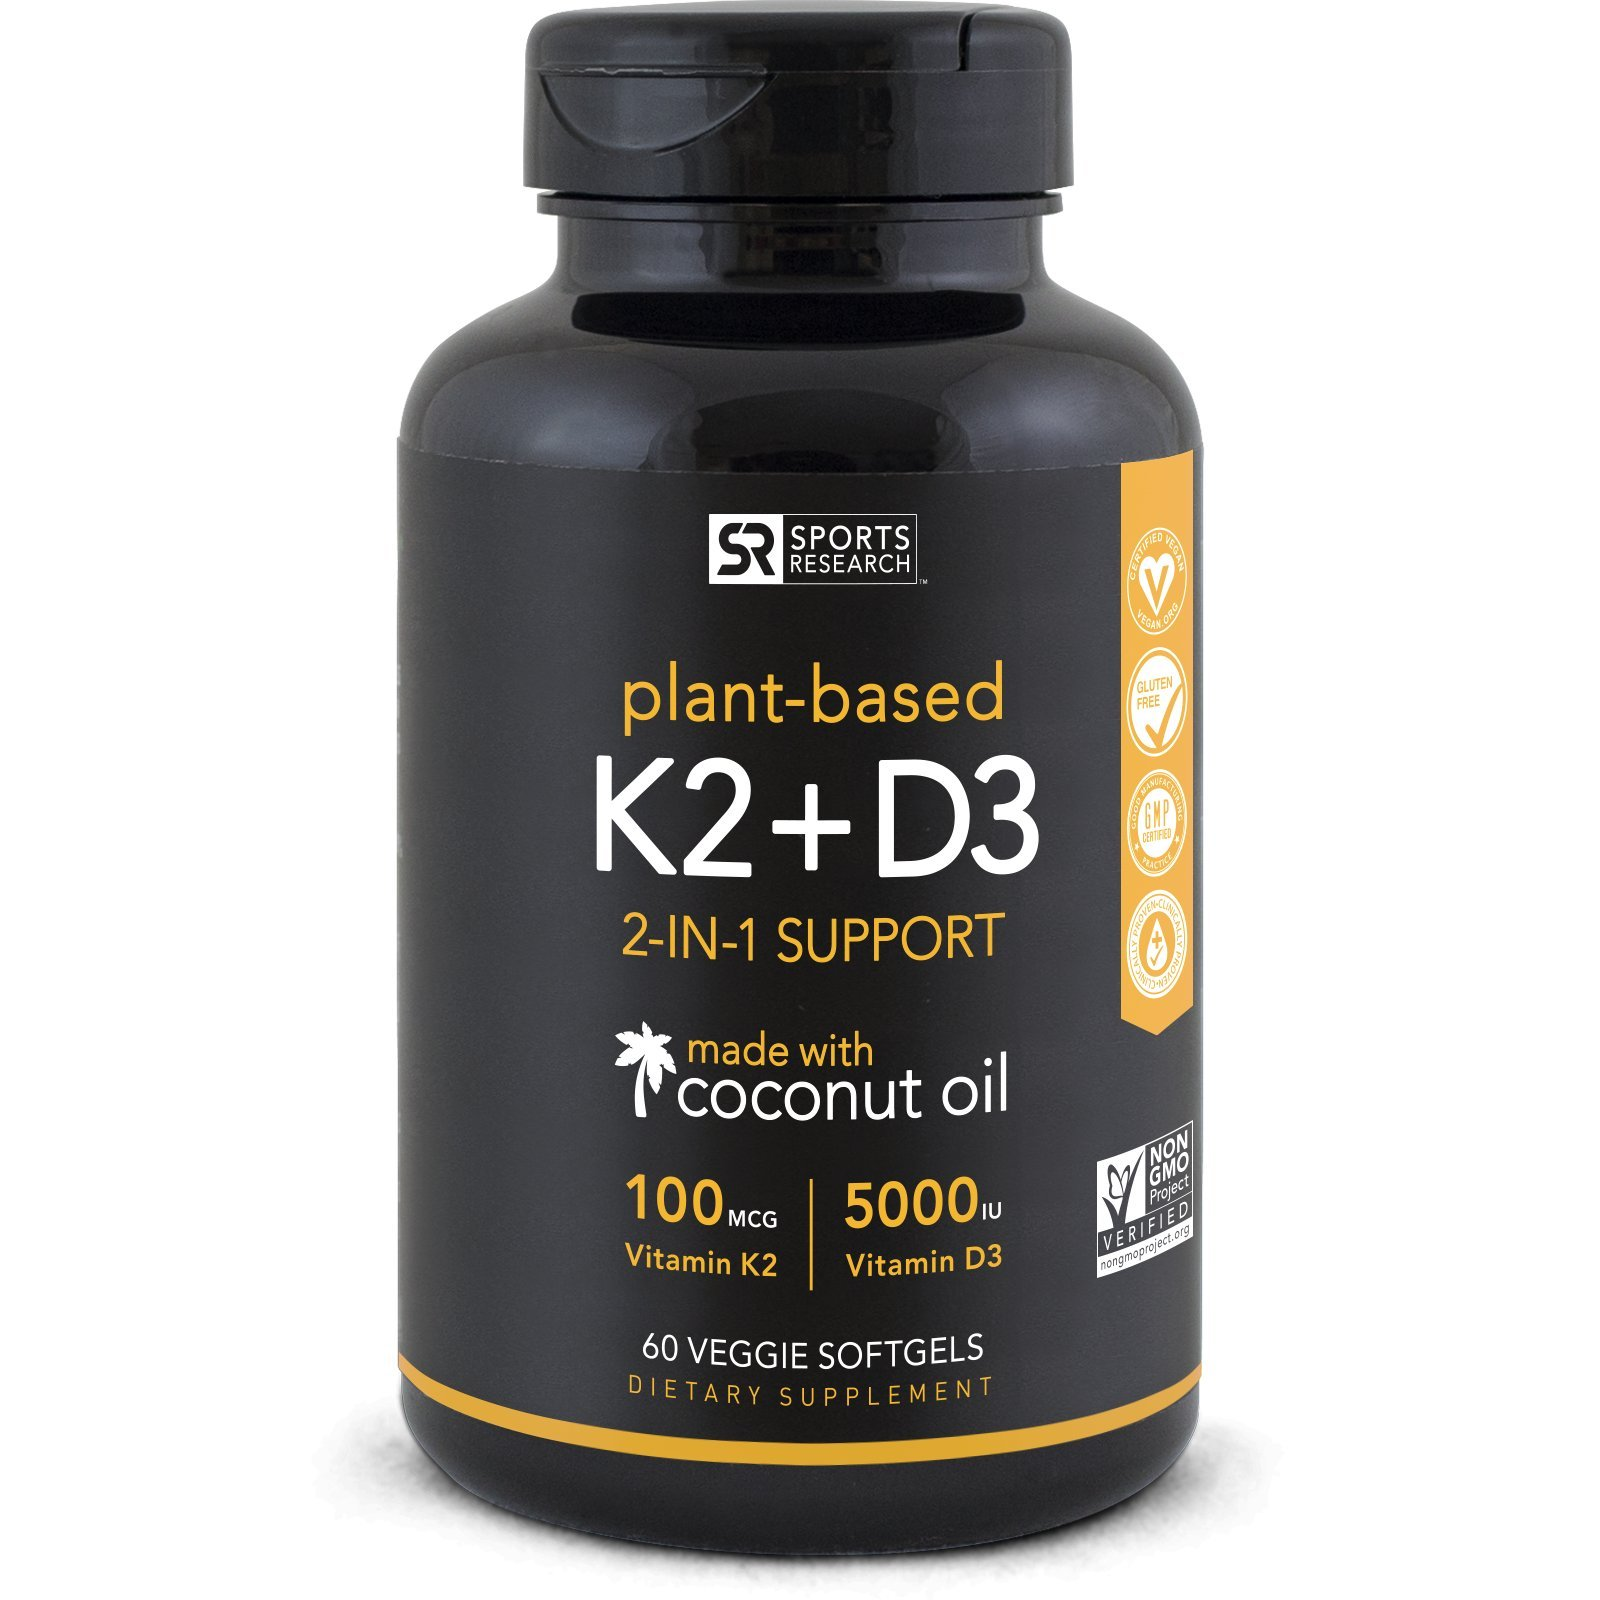 Vitamin K2 + D3 with Organic Coconut Oil for Better Absorption | 2-in-1 Support for Your Heart, Bones & Teeth | Vegan Certified, GMO & Gluten Free ~ 60 Veggie Gels by Sports Research (Image #1)